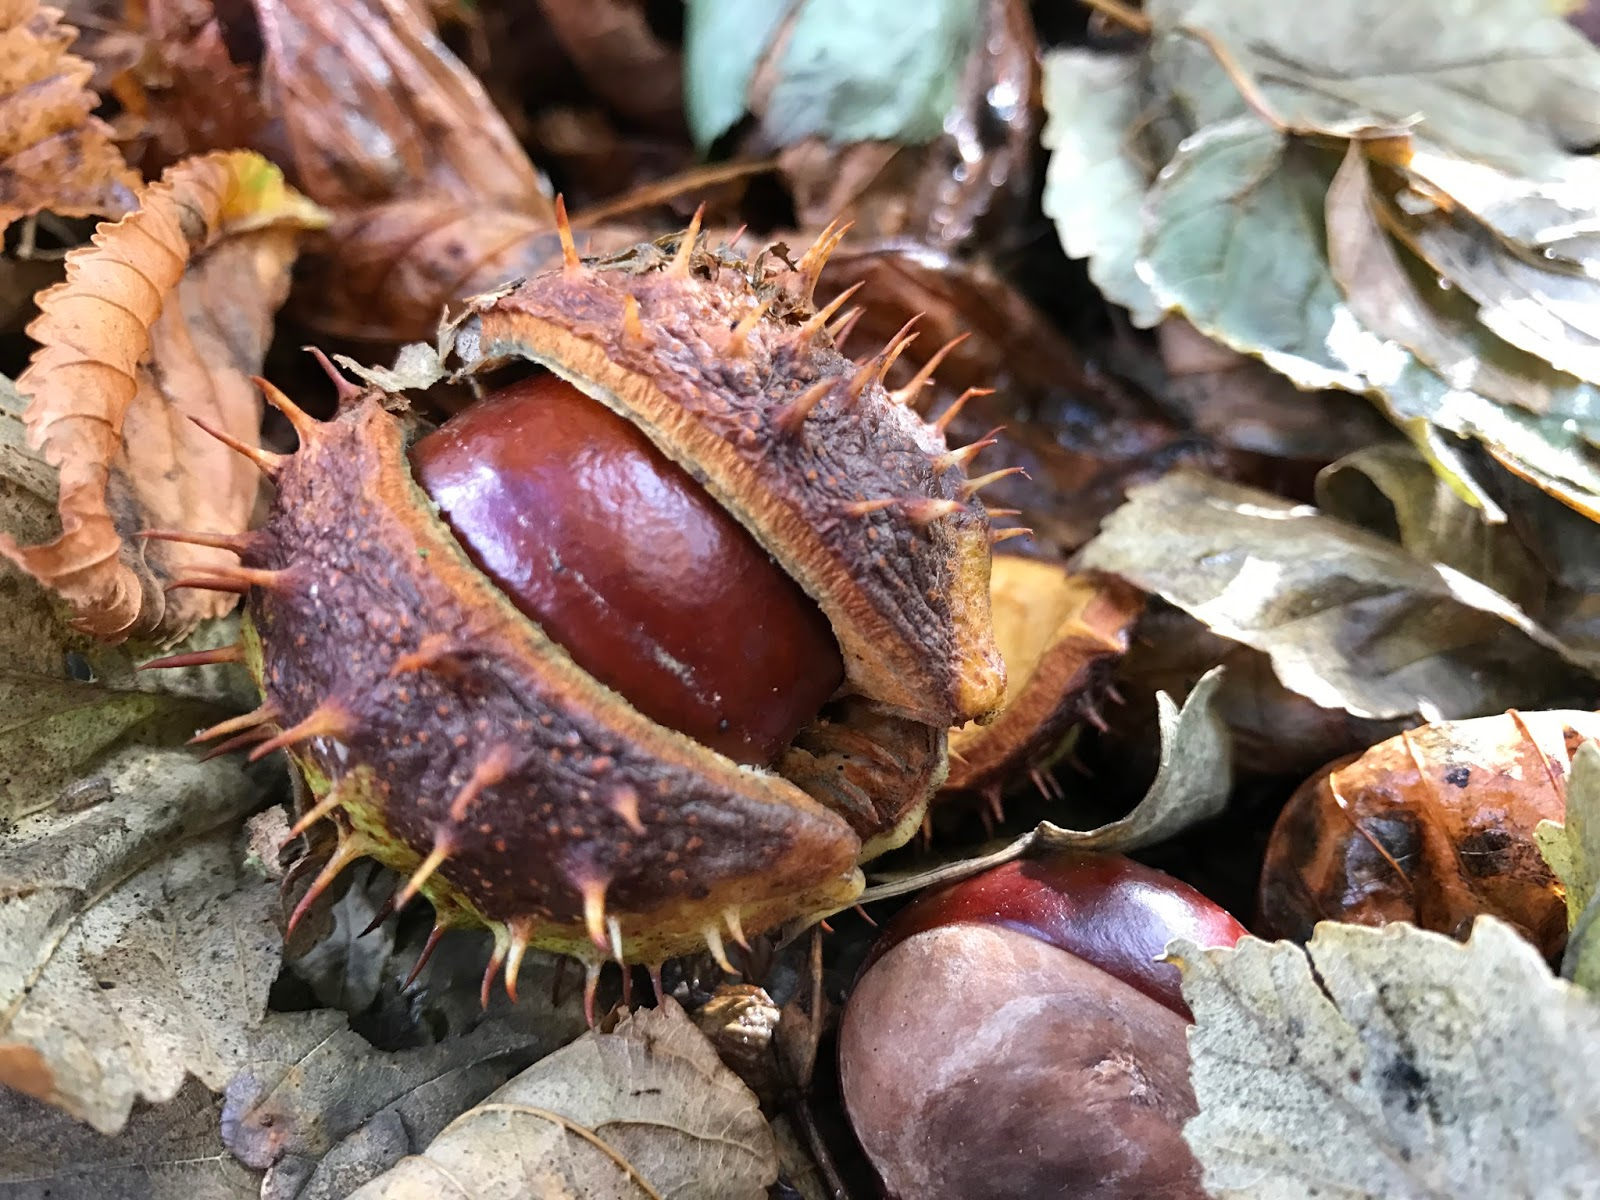 A spiky conker on brown leaves signalling the start of Autumn and cold weather